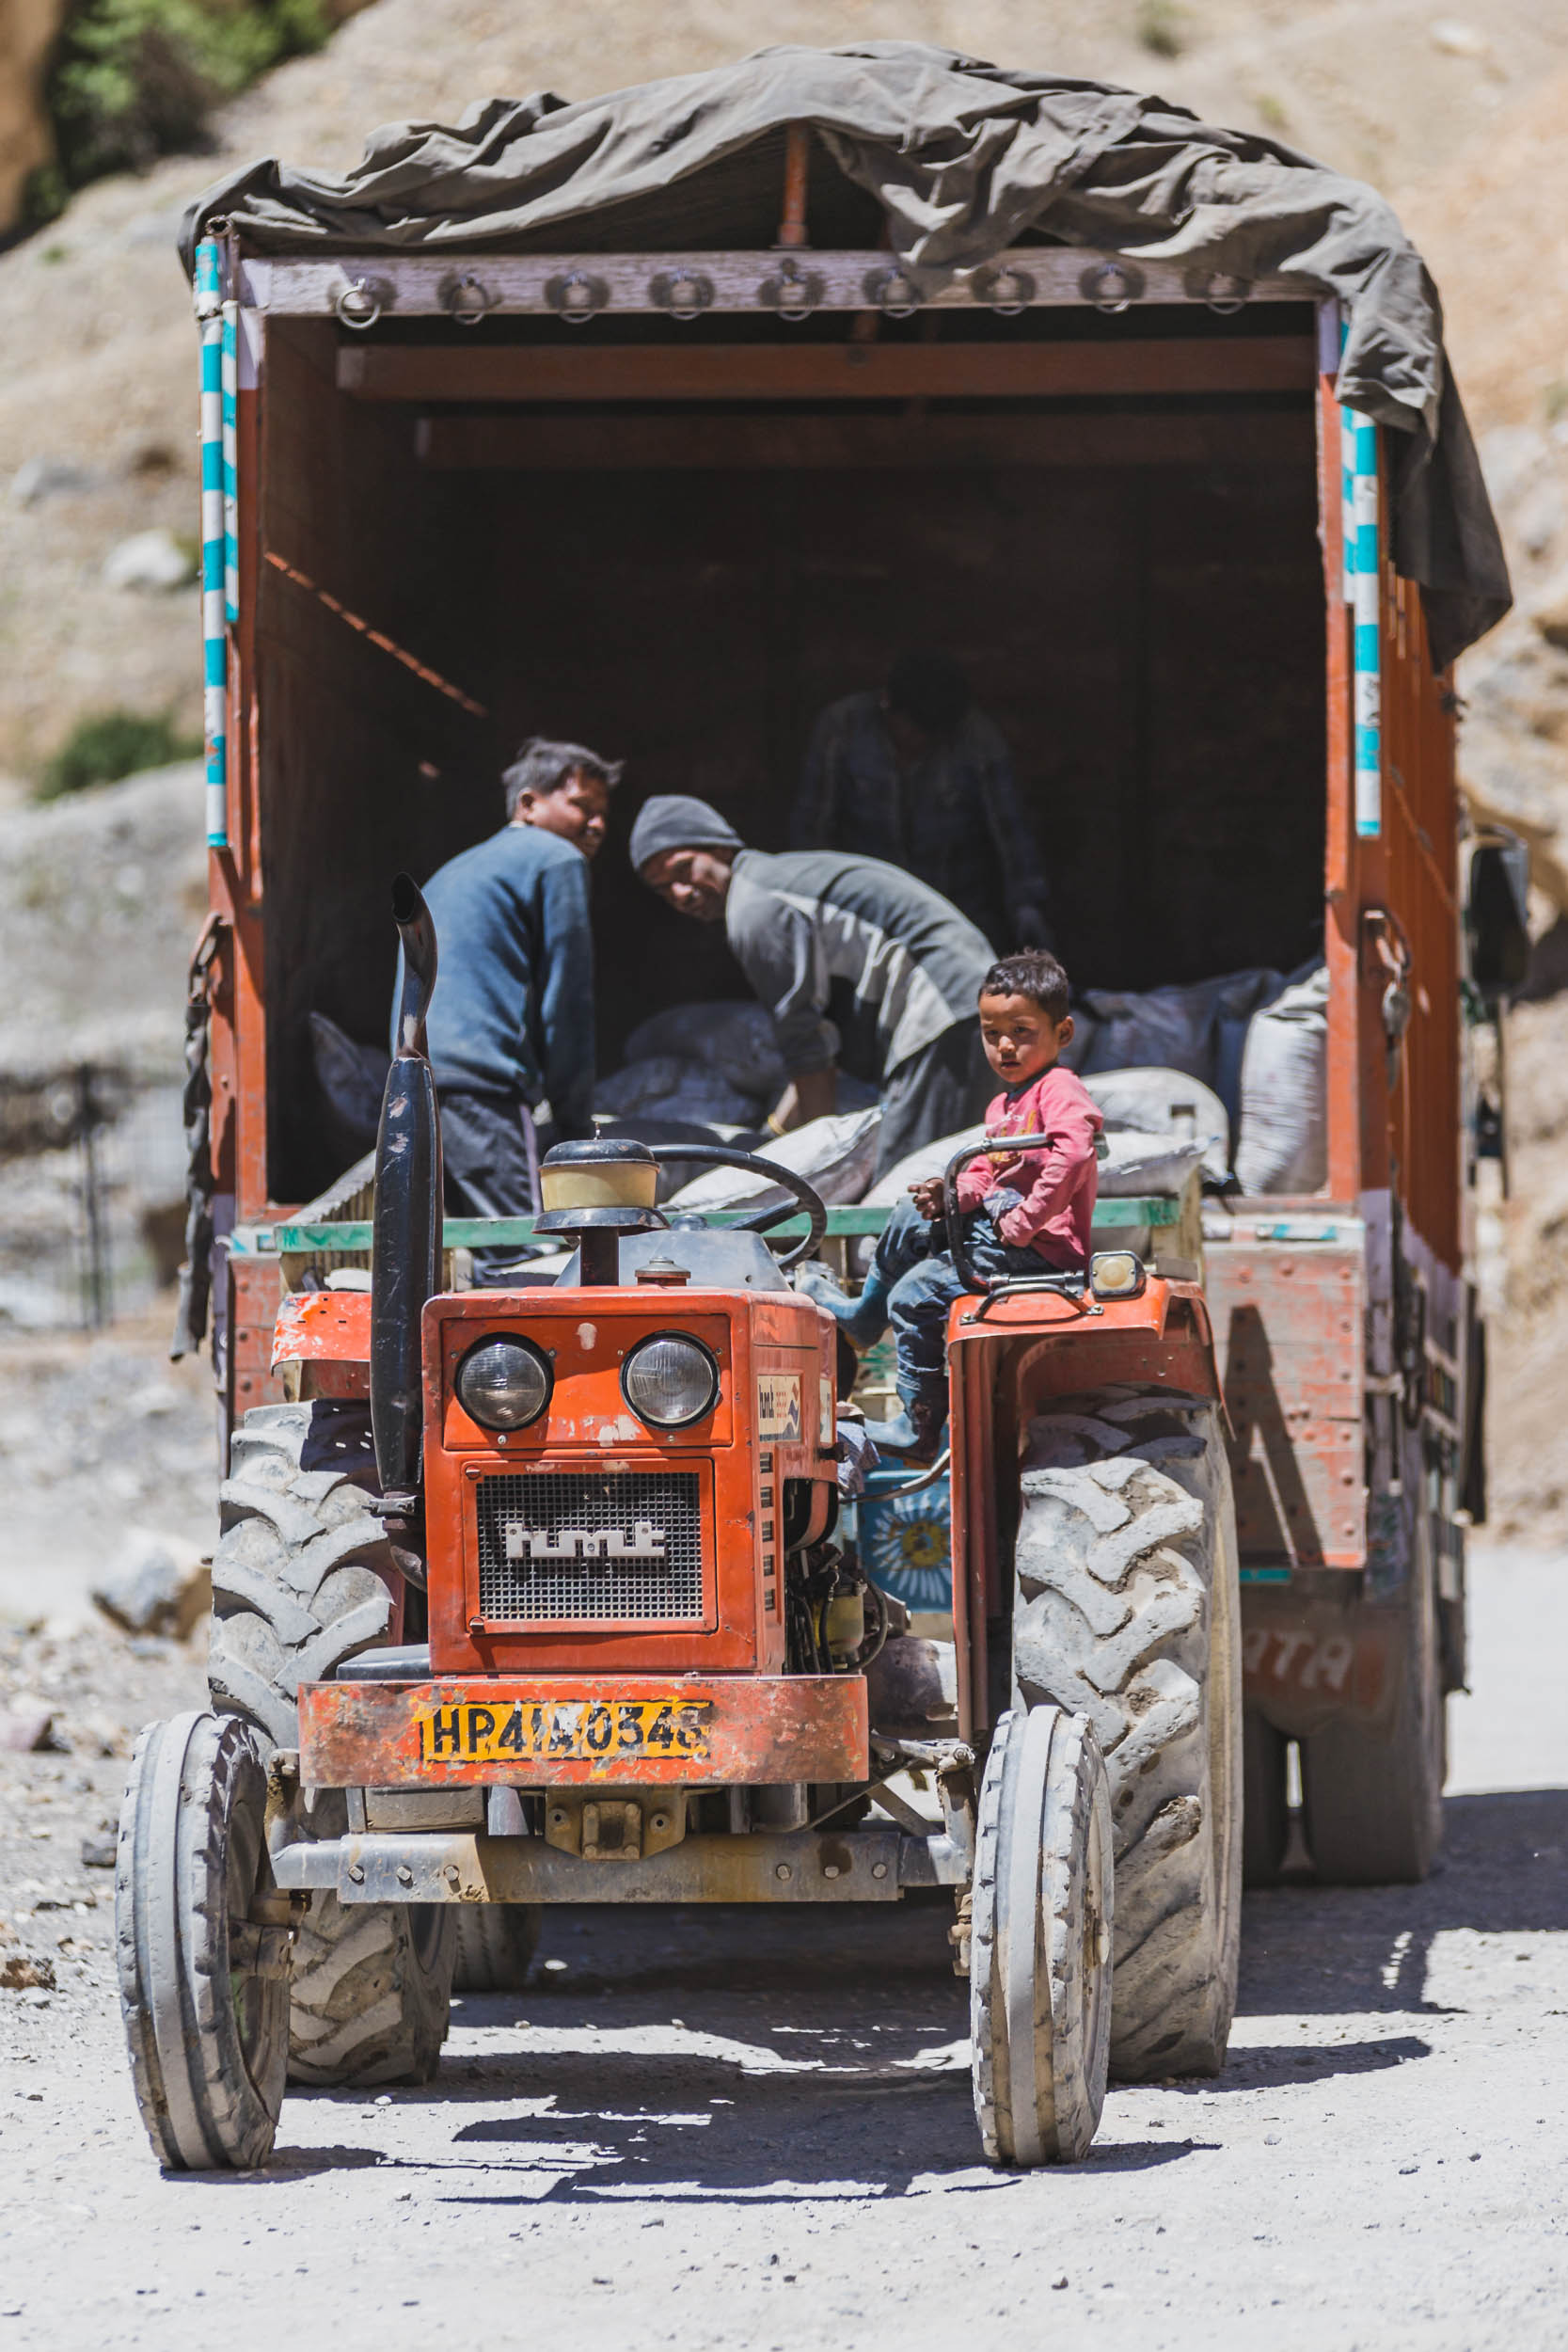 Locals working on tractor in Kaza, Spiti Valley.